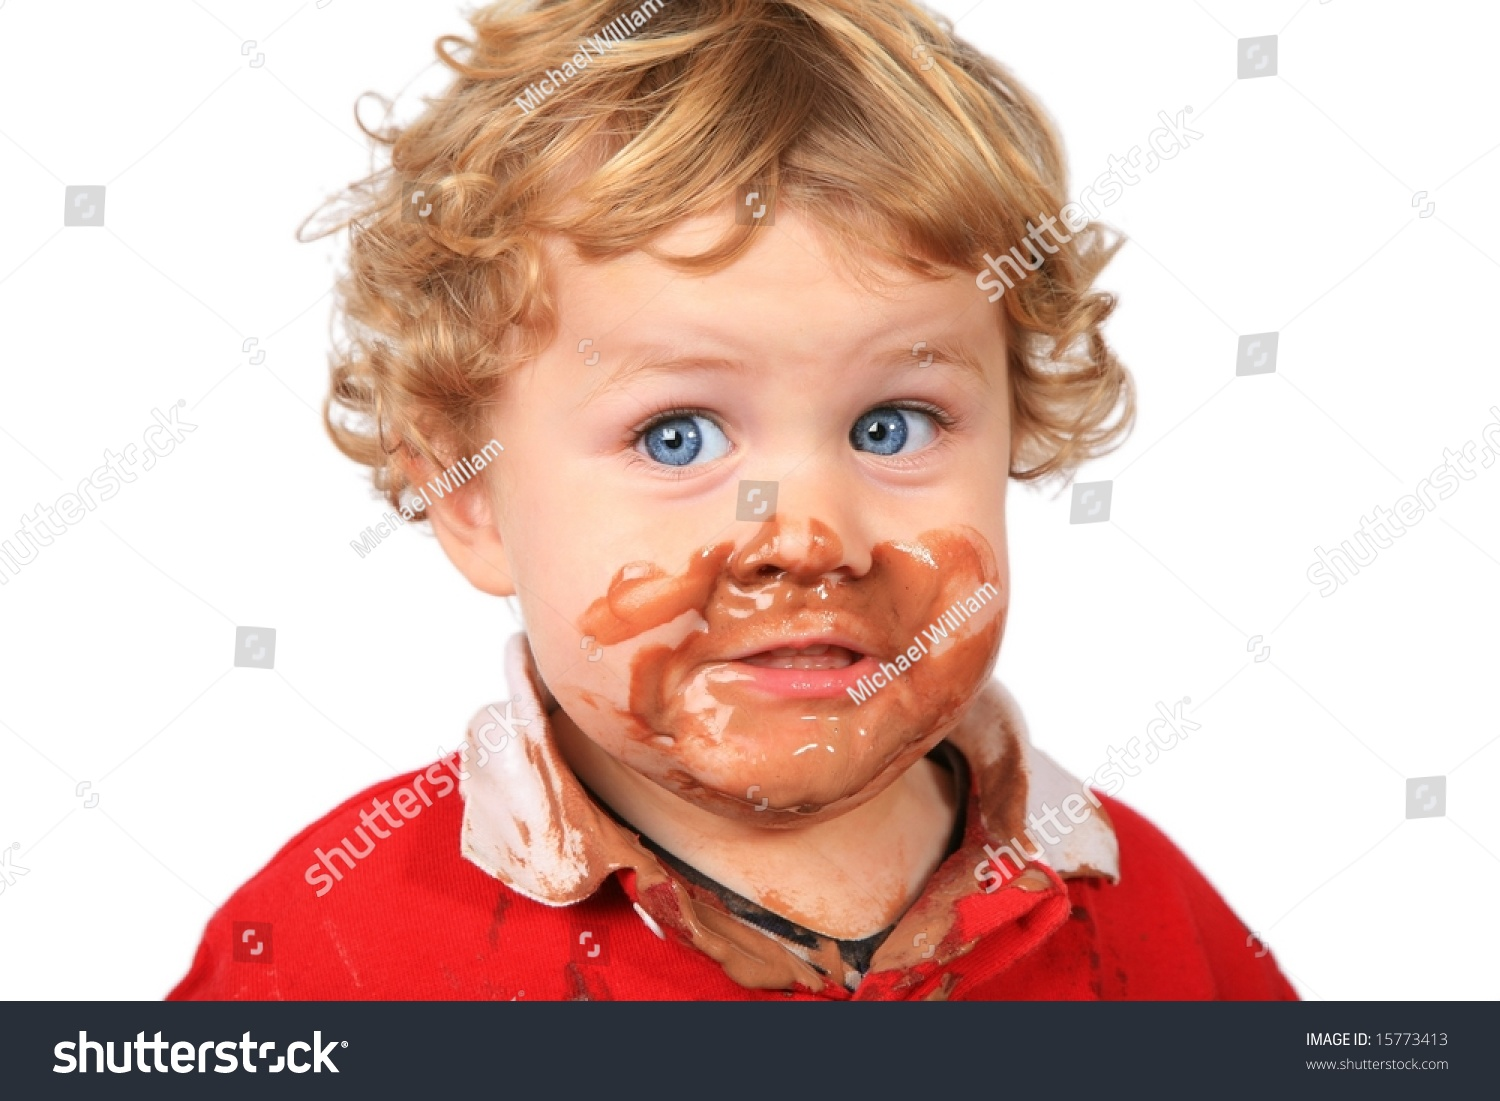 Cute Boy Chocolate Ice Cream On Stock Photo 15773413 - Shutterstock